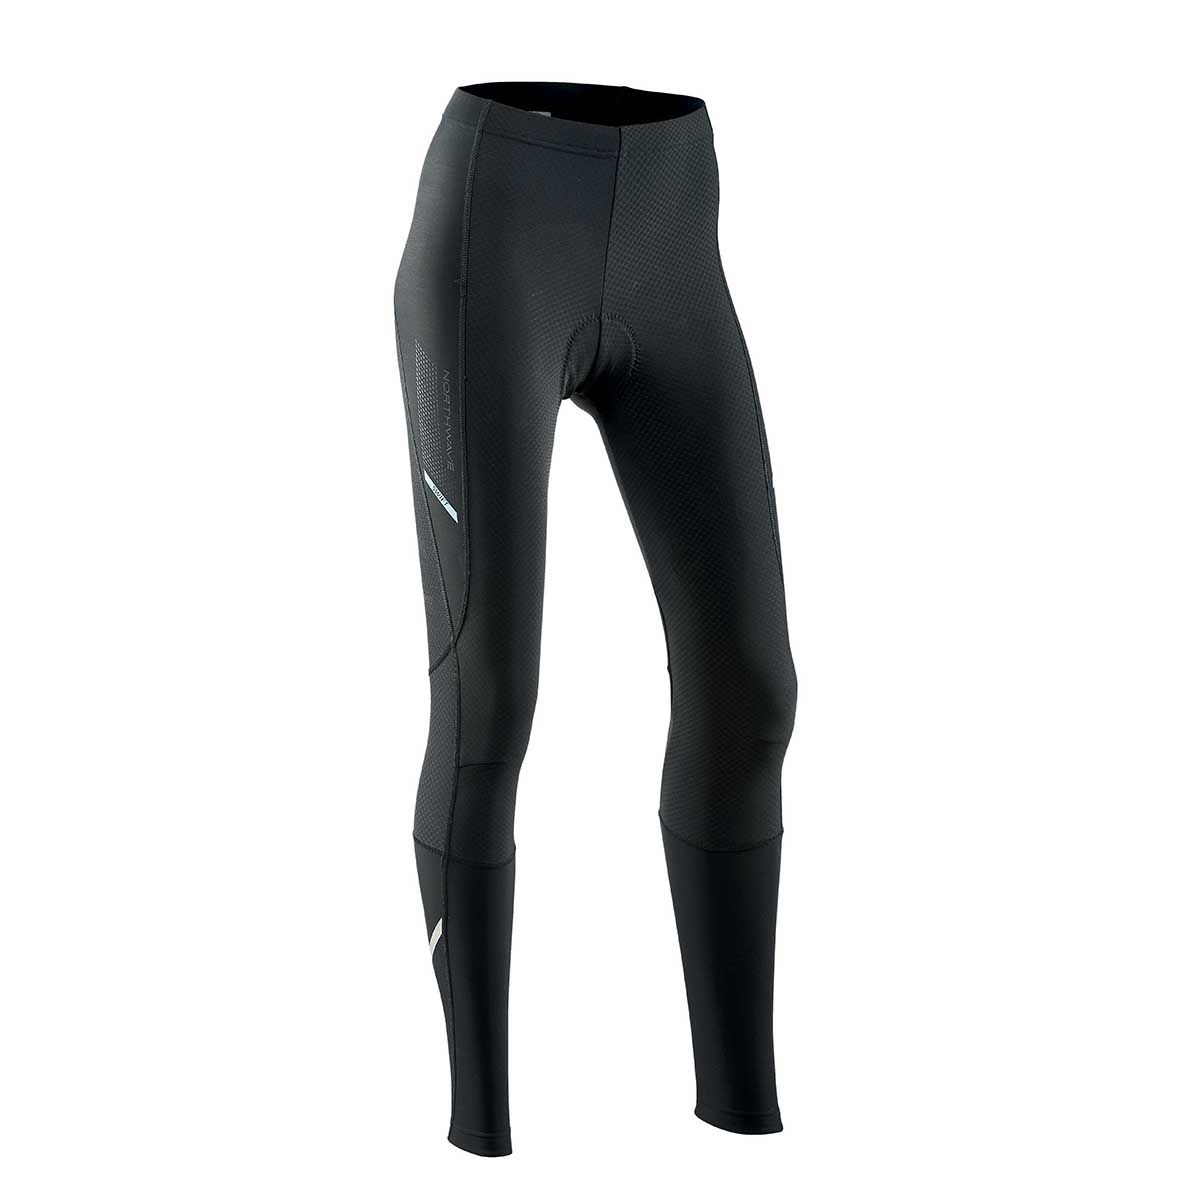 Culote largo Northwave Swift para mujer - Mallas